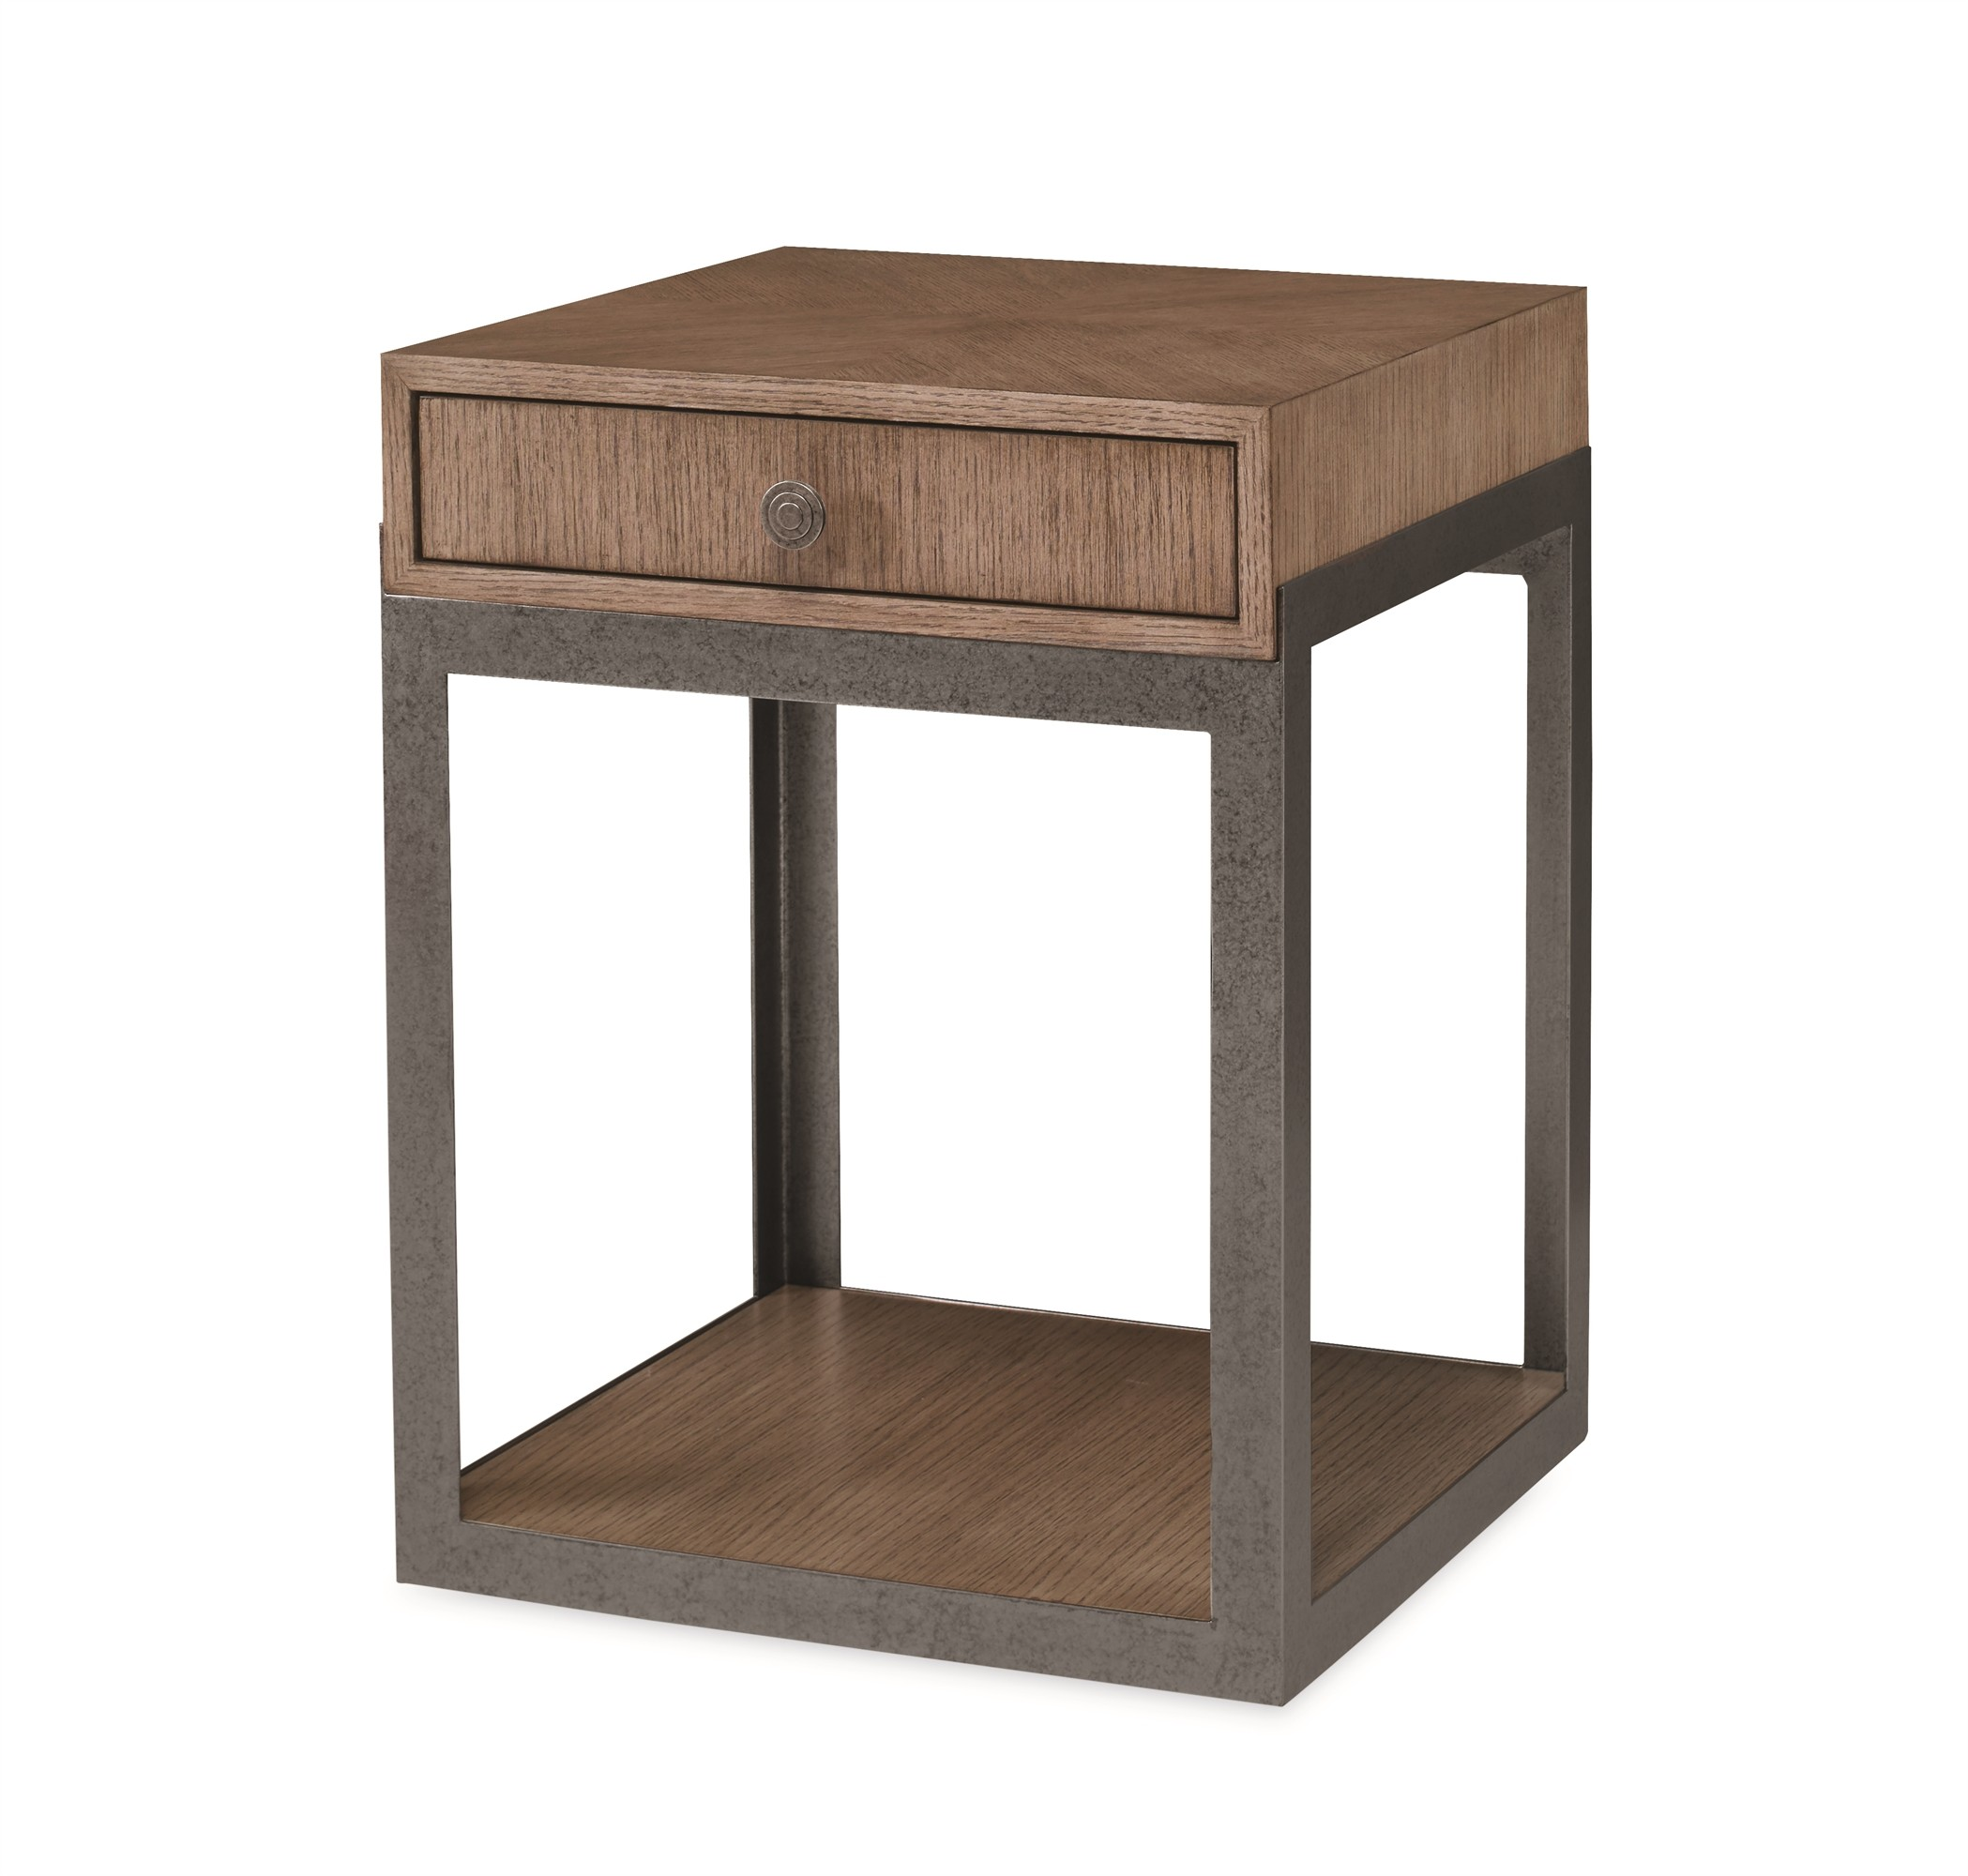 Casa Bella Box On Stand  - Timber Gray Finish